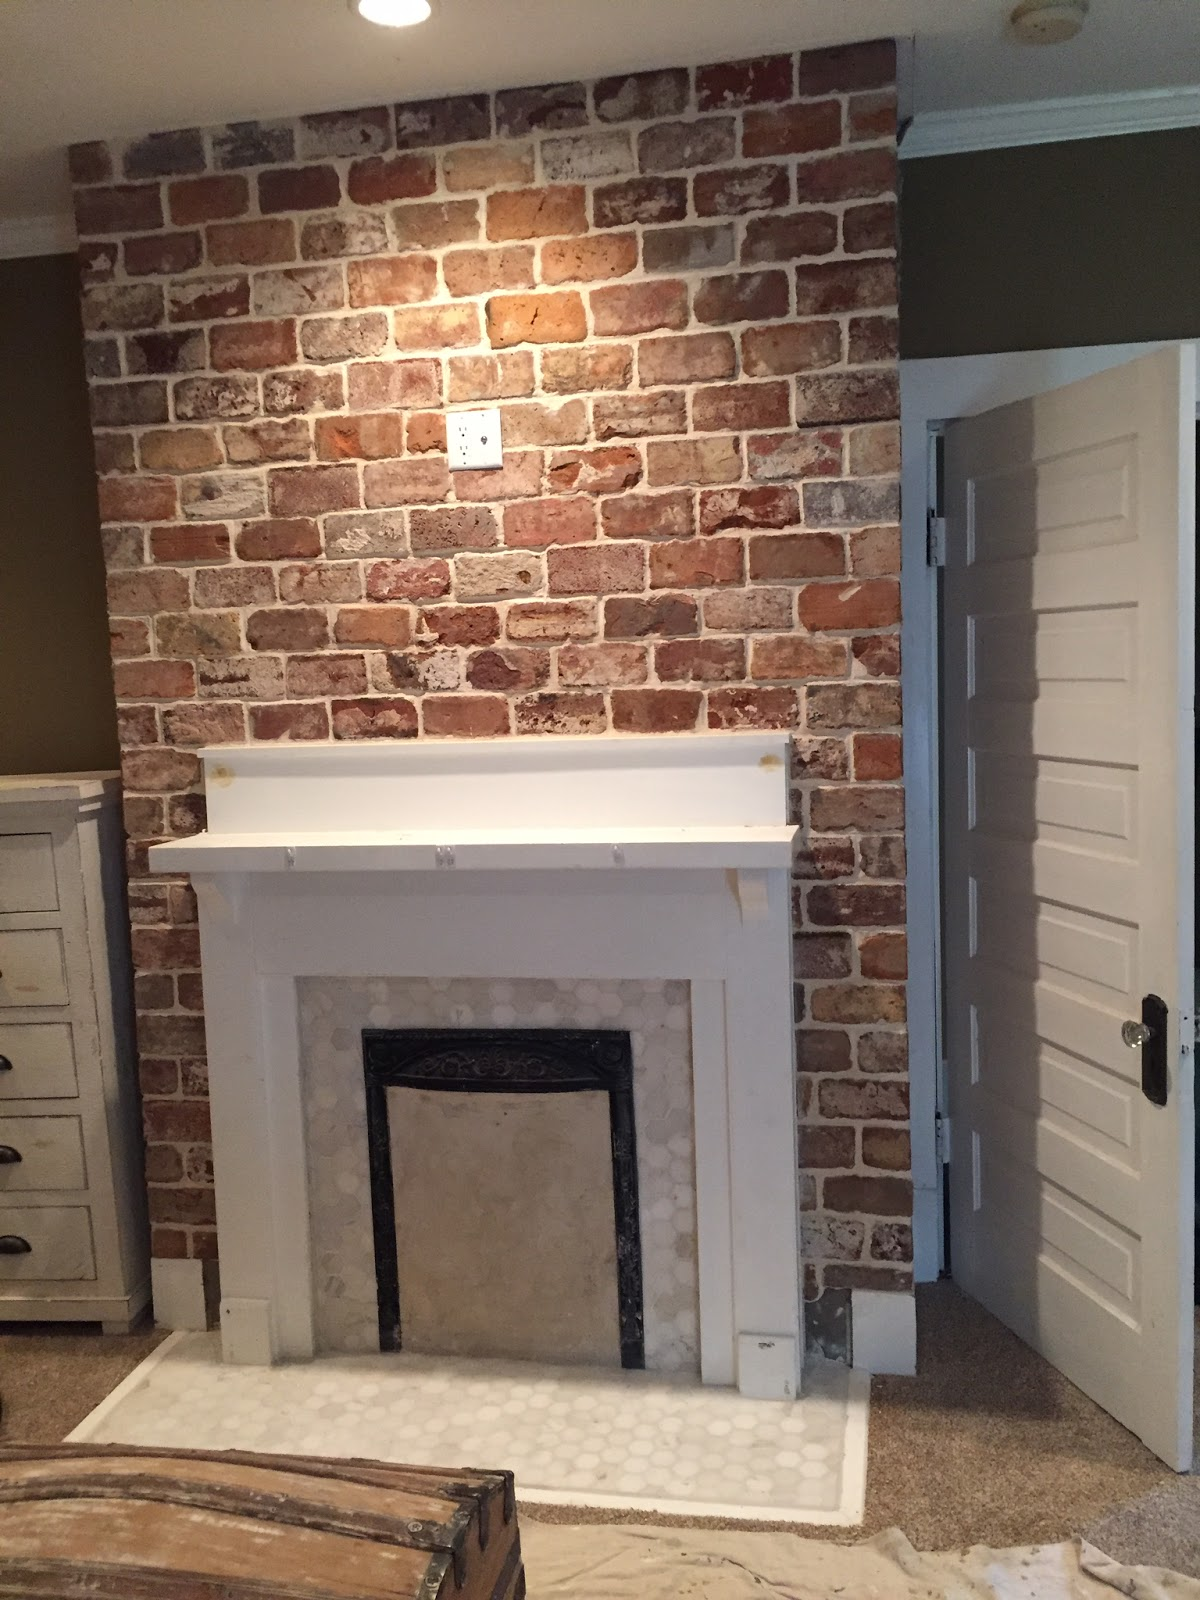 Brick Tile Fireplace | Tile Design Ideas